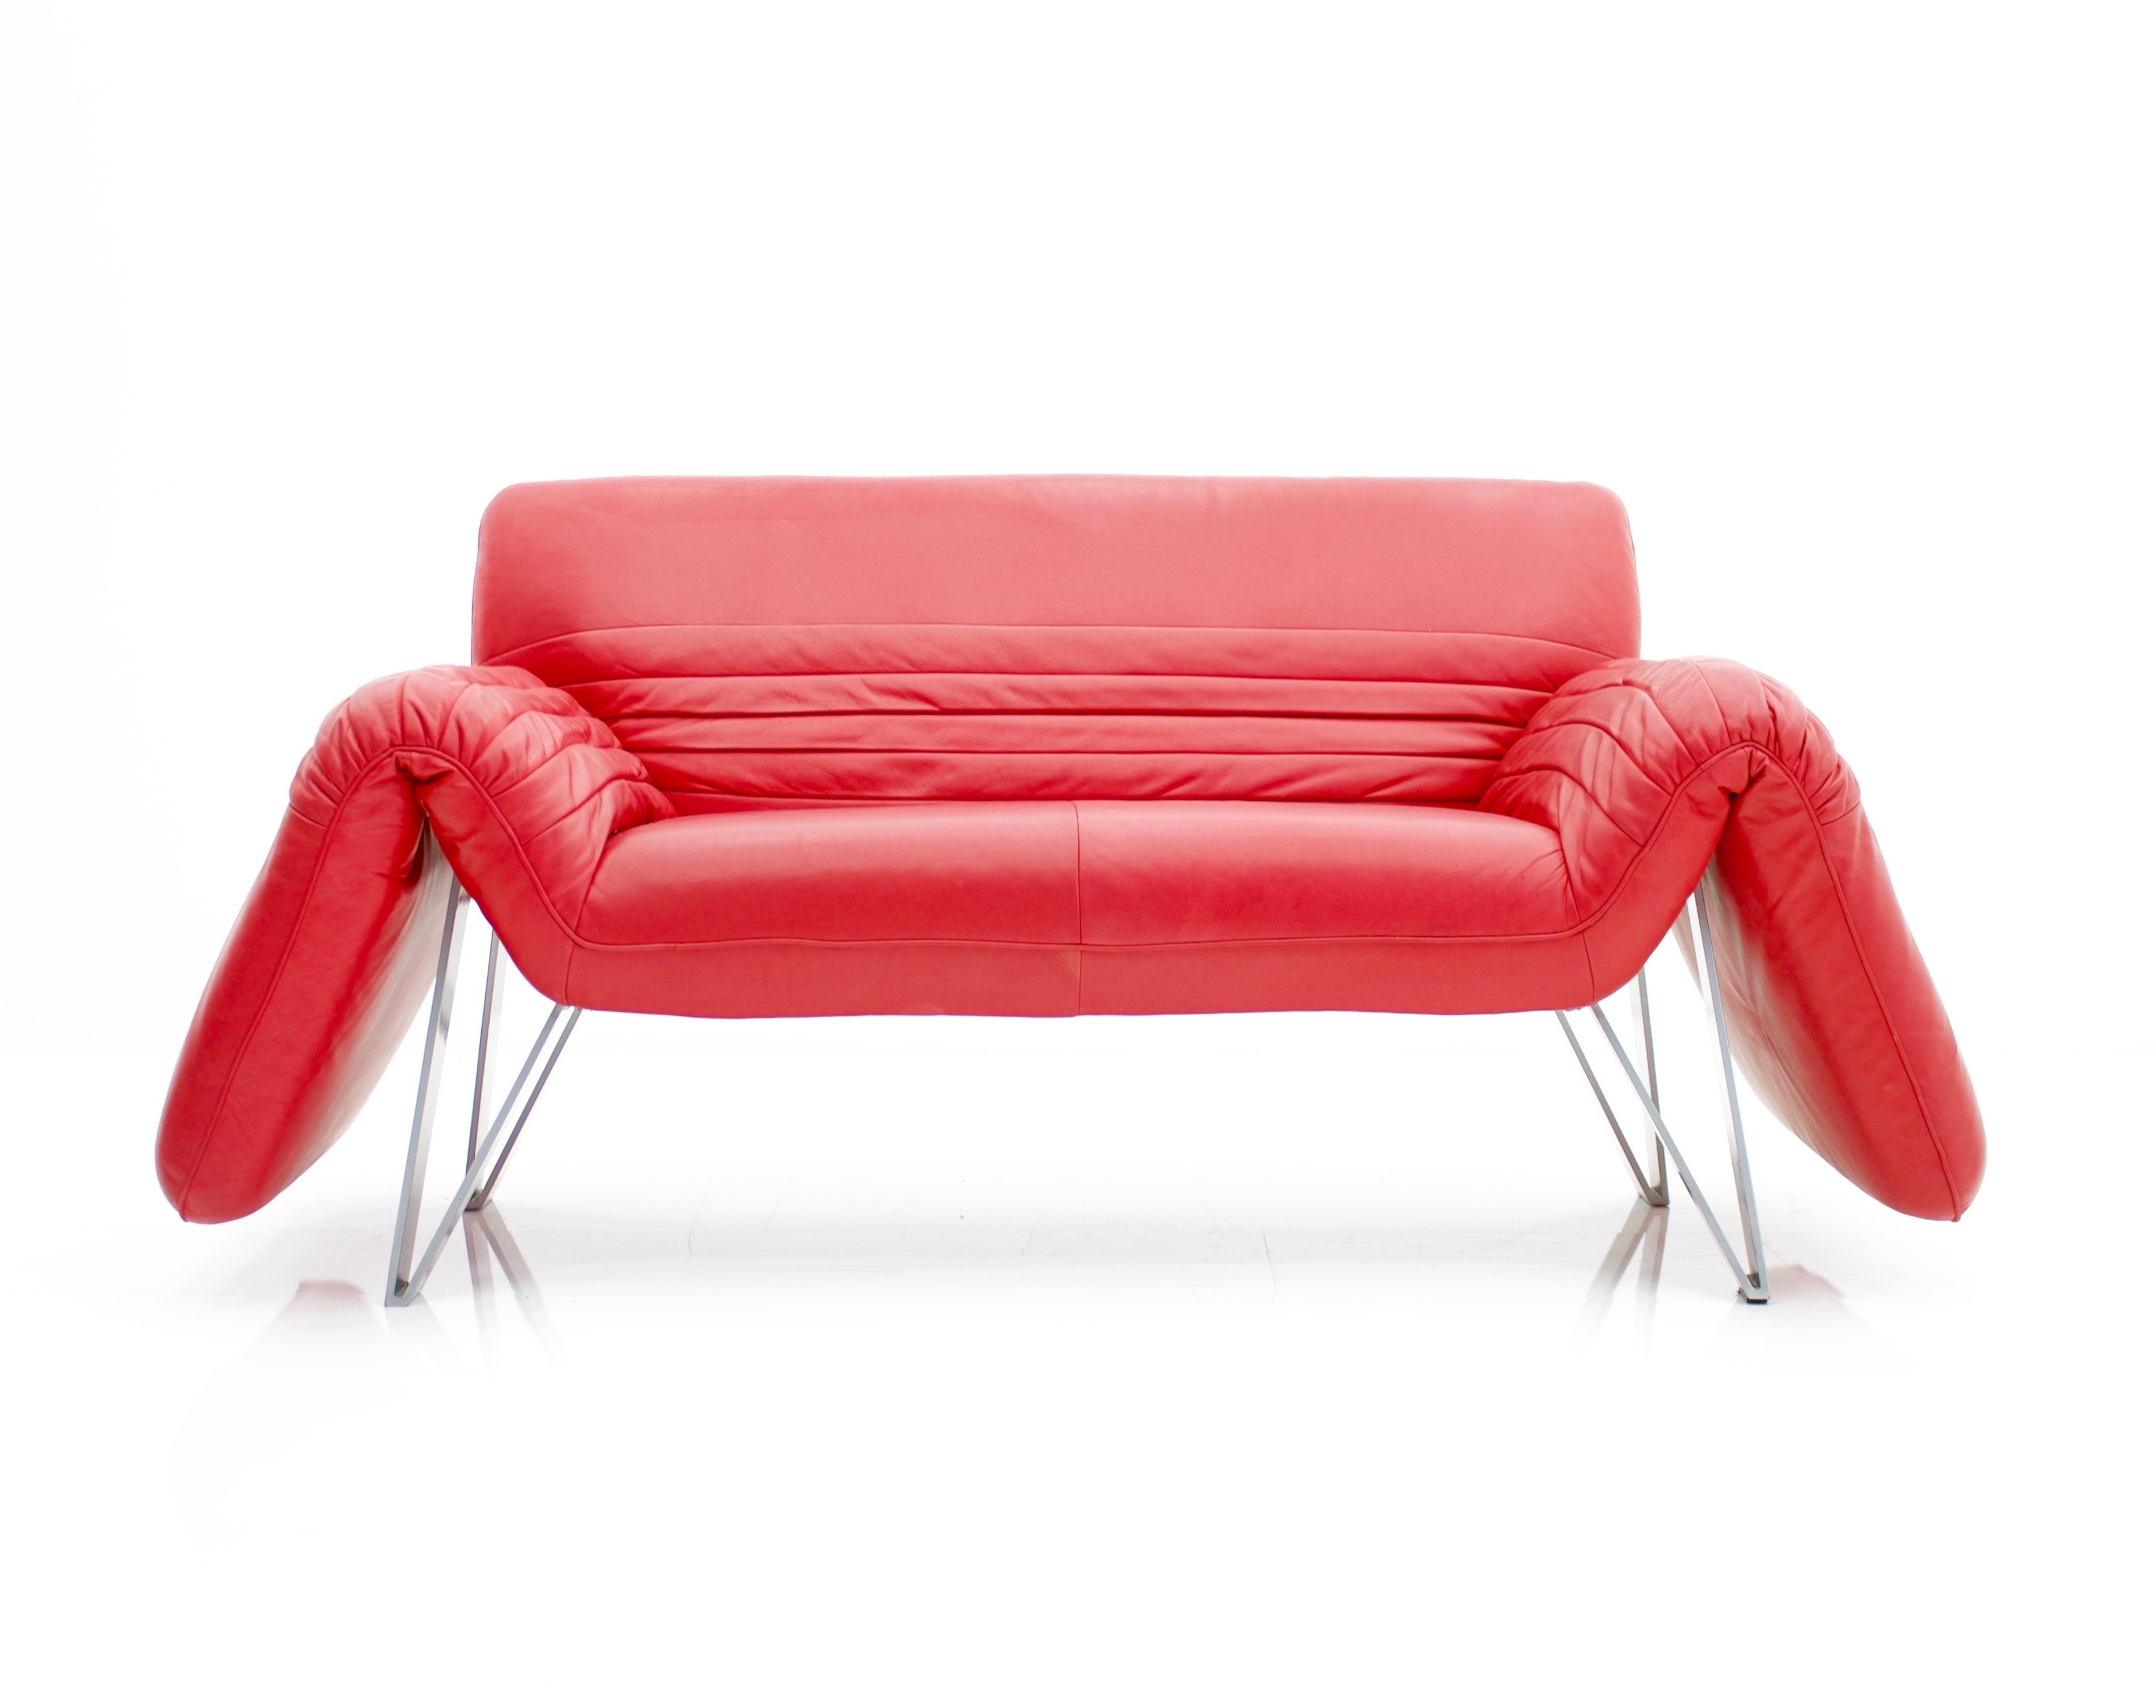 - Red Leather 'DS 142' Sofa By Wilfried Totzek For De Sede, Swiss